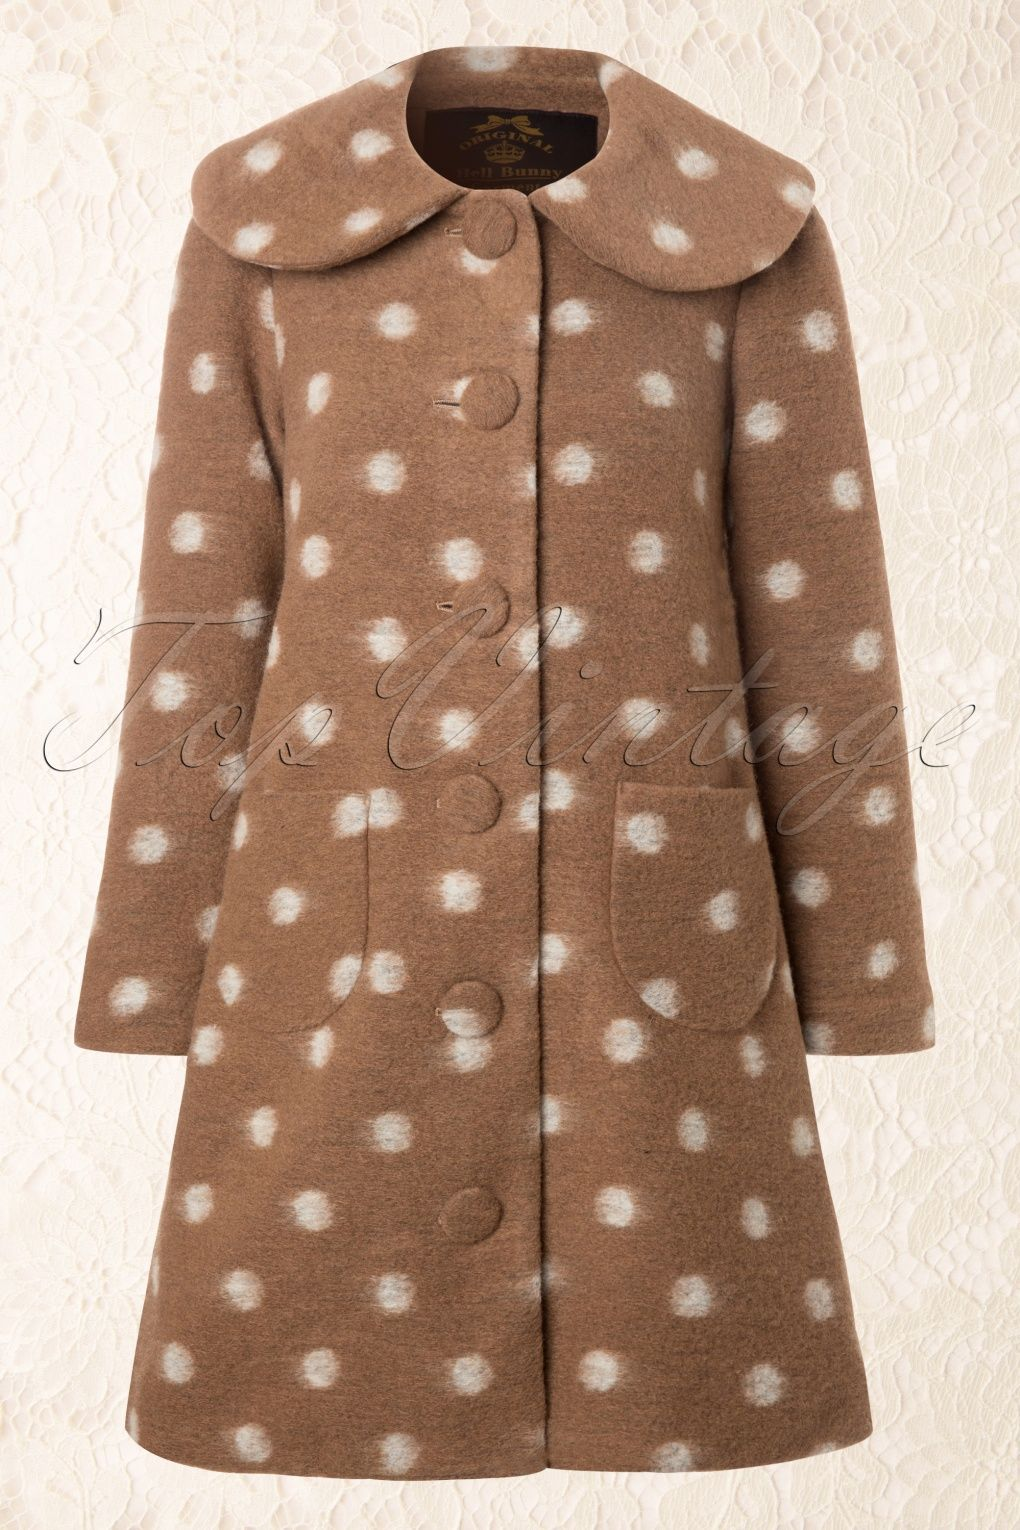 Bunny s collete coat in camel my style pinterest camels